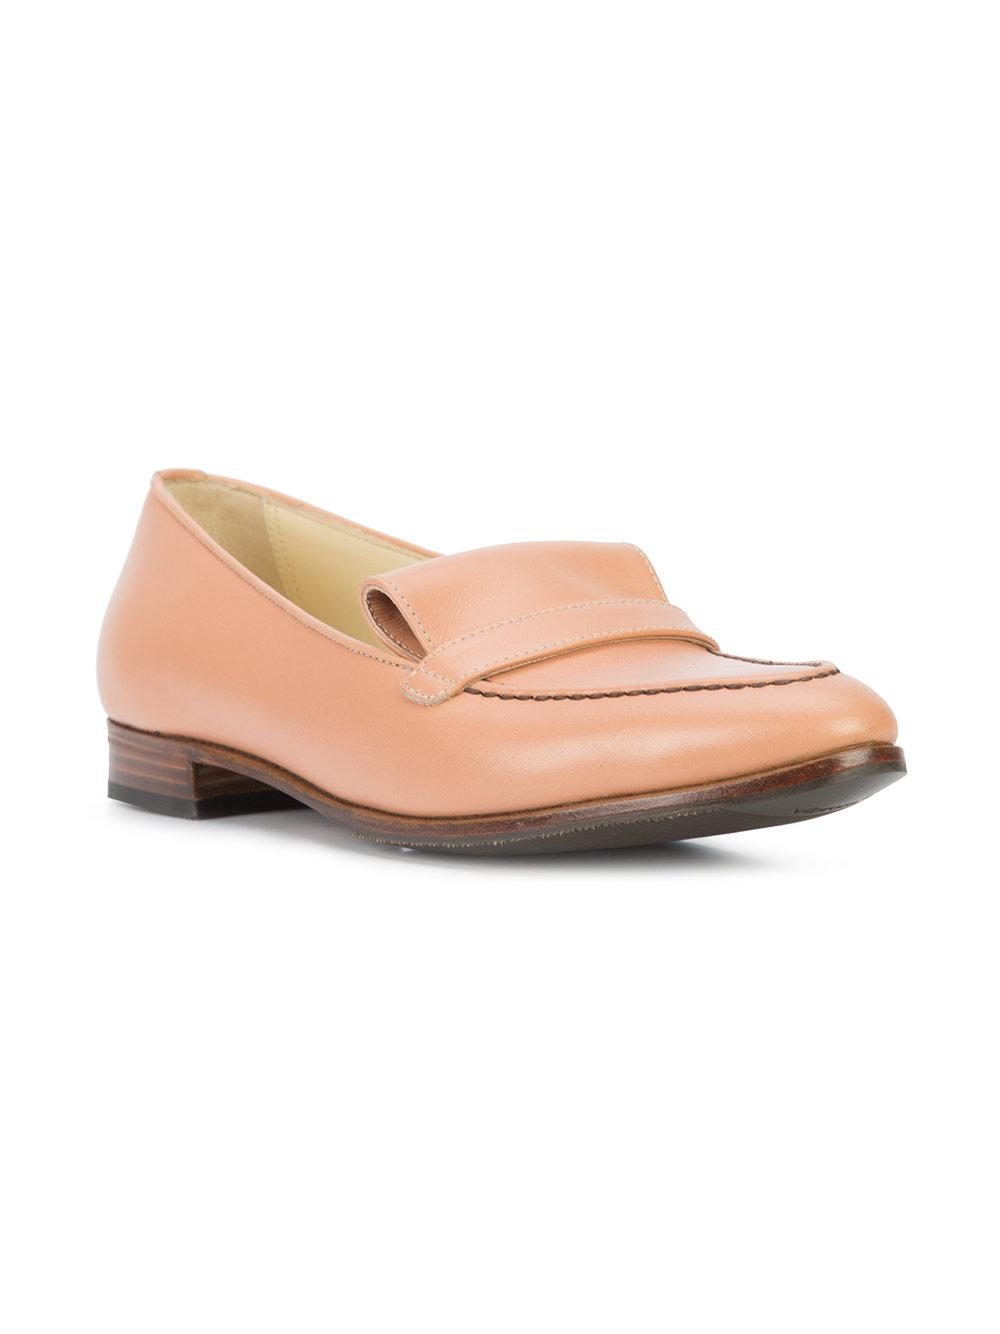 Alysia loafers - Pink & Purple Sarah Flint 0Jo1pA9god